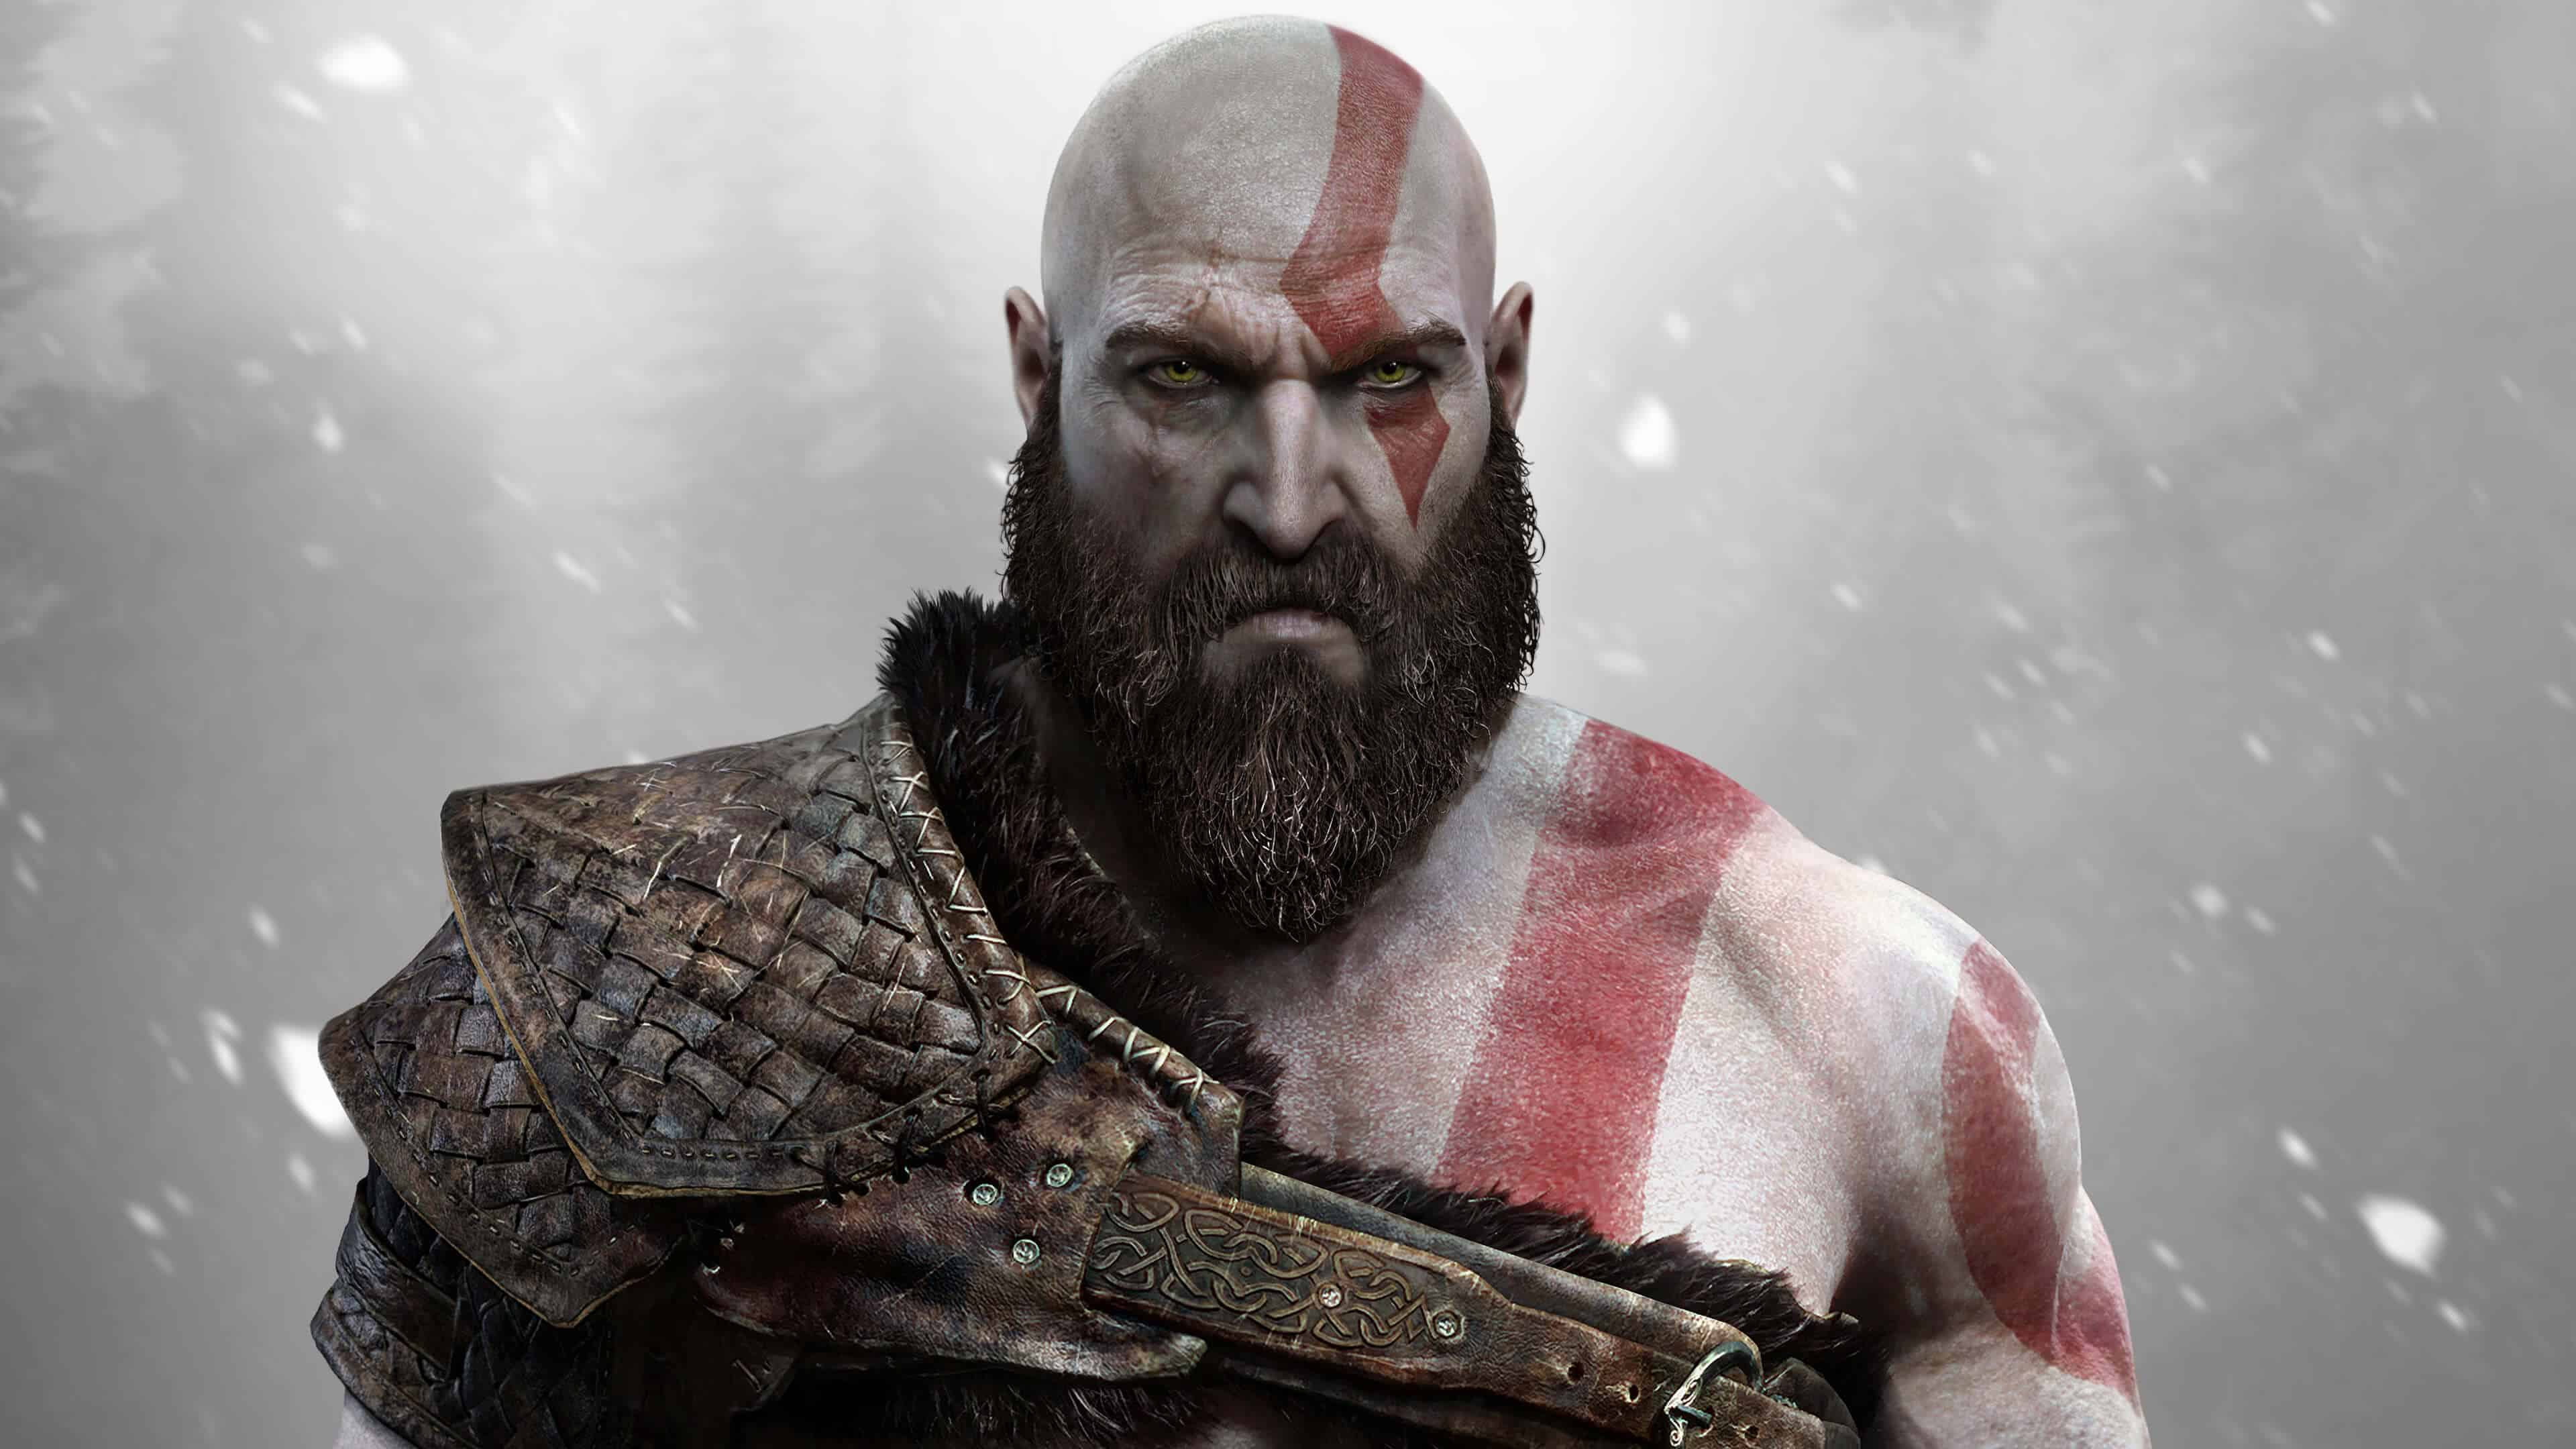 God Of War 4 Kratos Uhd 4k Wallpaper Pixelz